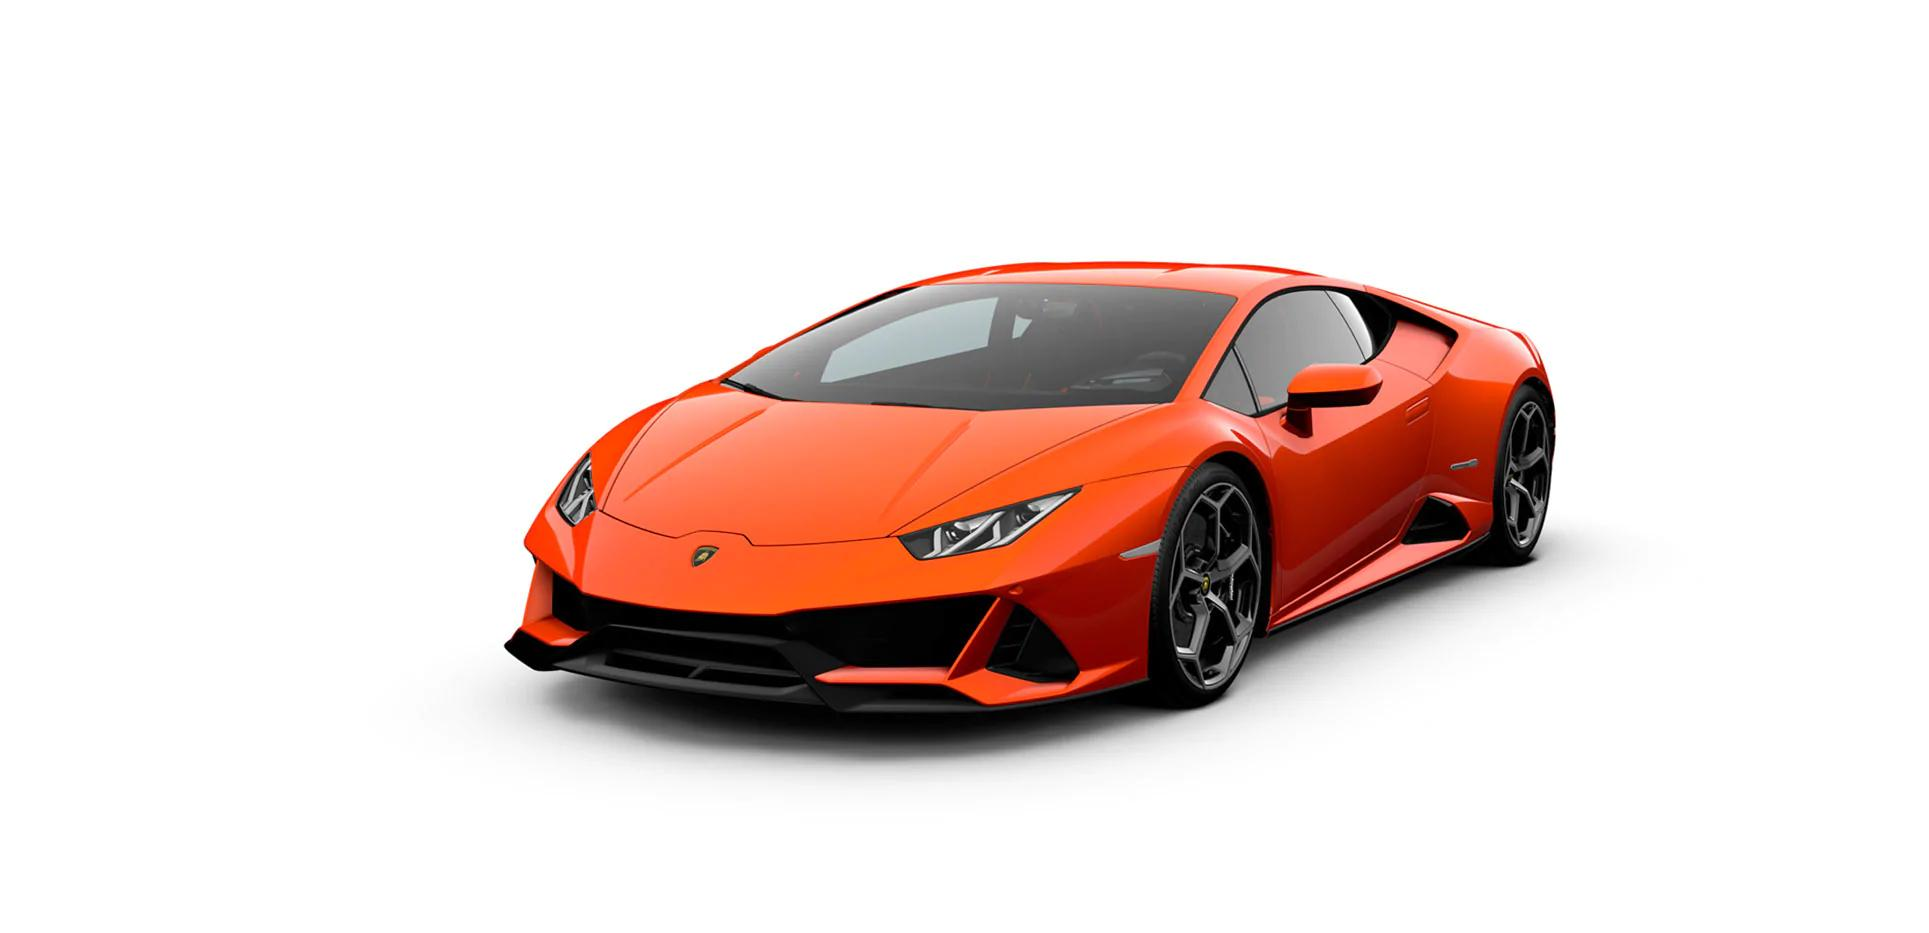 Lamborghini Huracan Evo Reviews Price Specifications Mileage